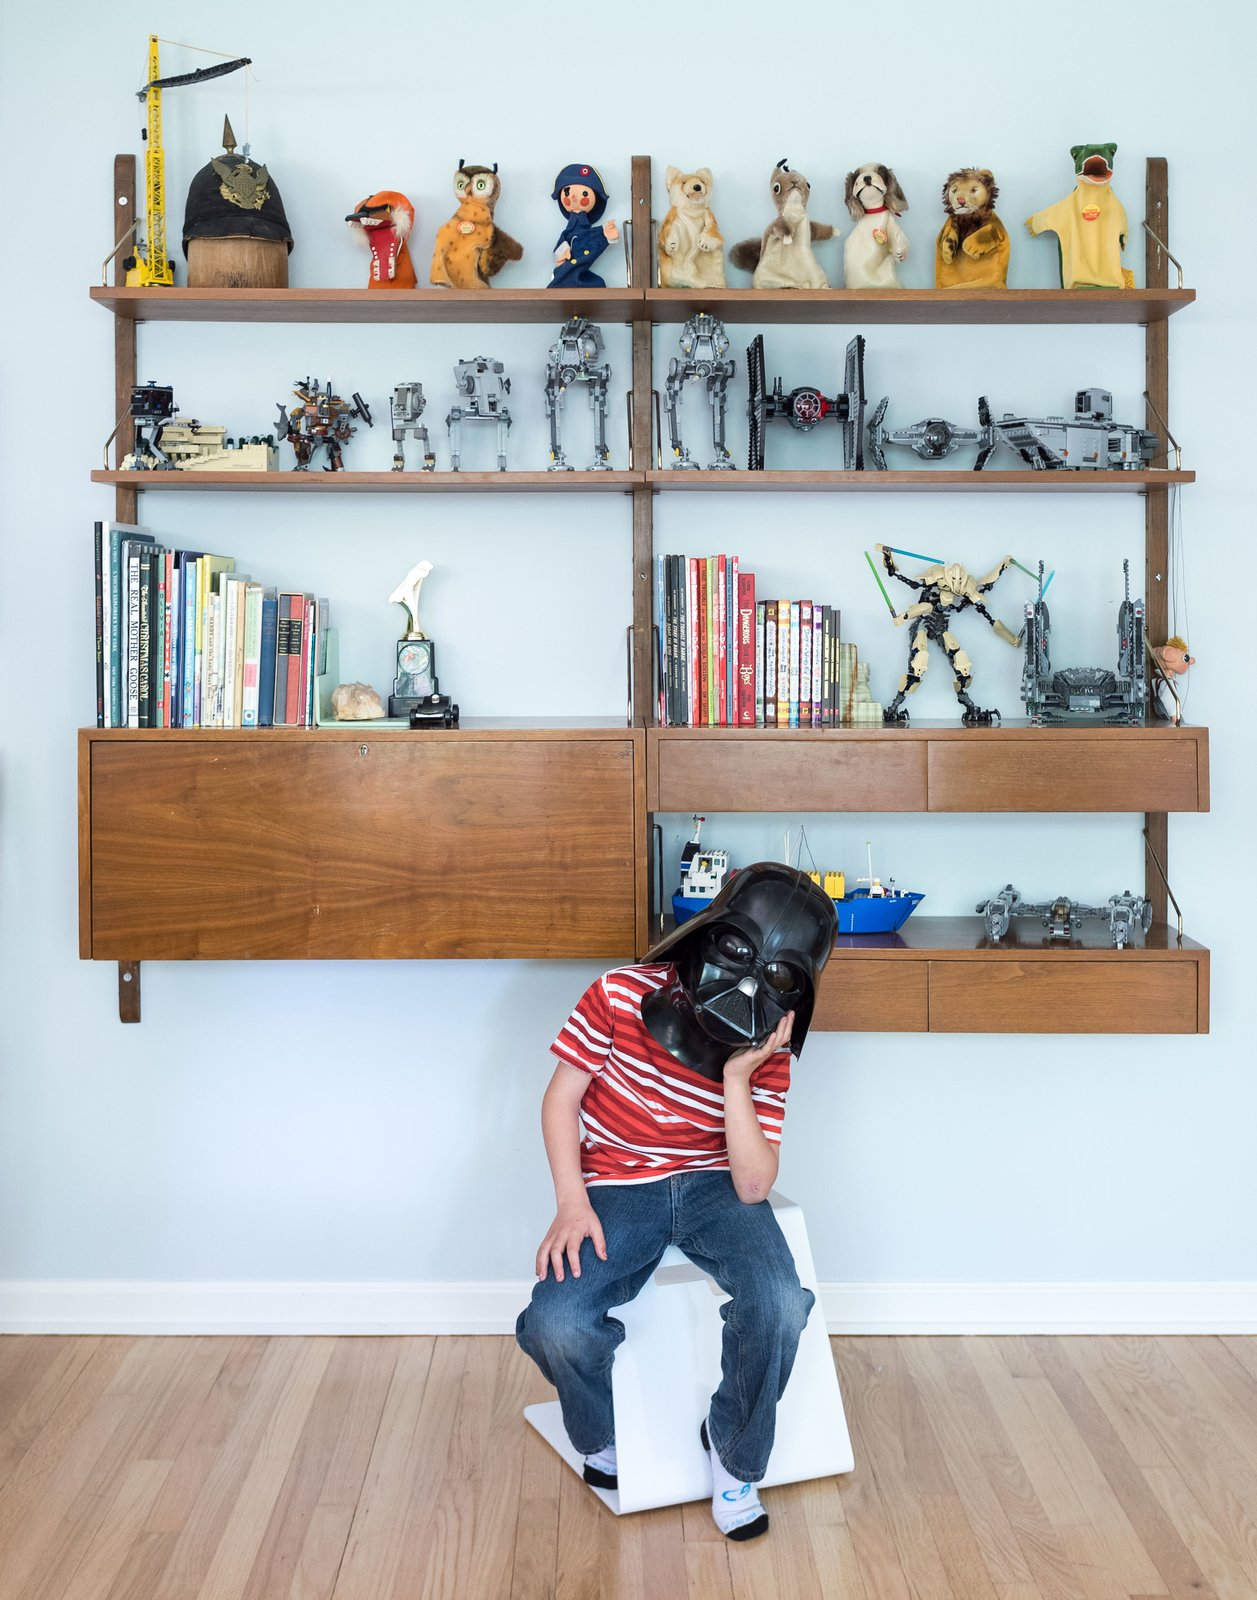 Kids Room, Bedroom Room Type, Light Hardwood Floor, Pre-Teen Age, Toddler Age, and Boy Gender Lawrence, seven, shows off his toy collection on a vintage Cado wall unit in his bedroom,  Photo 19 of 19 in How to Take a Dwell Photo